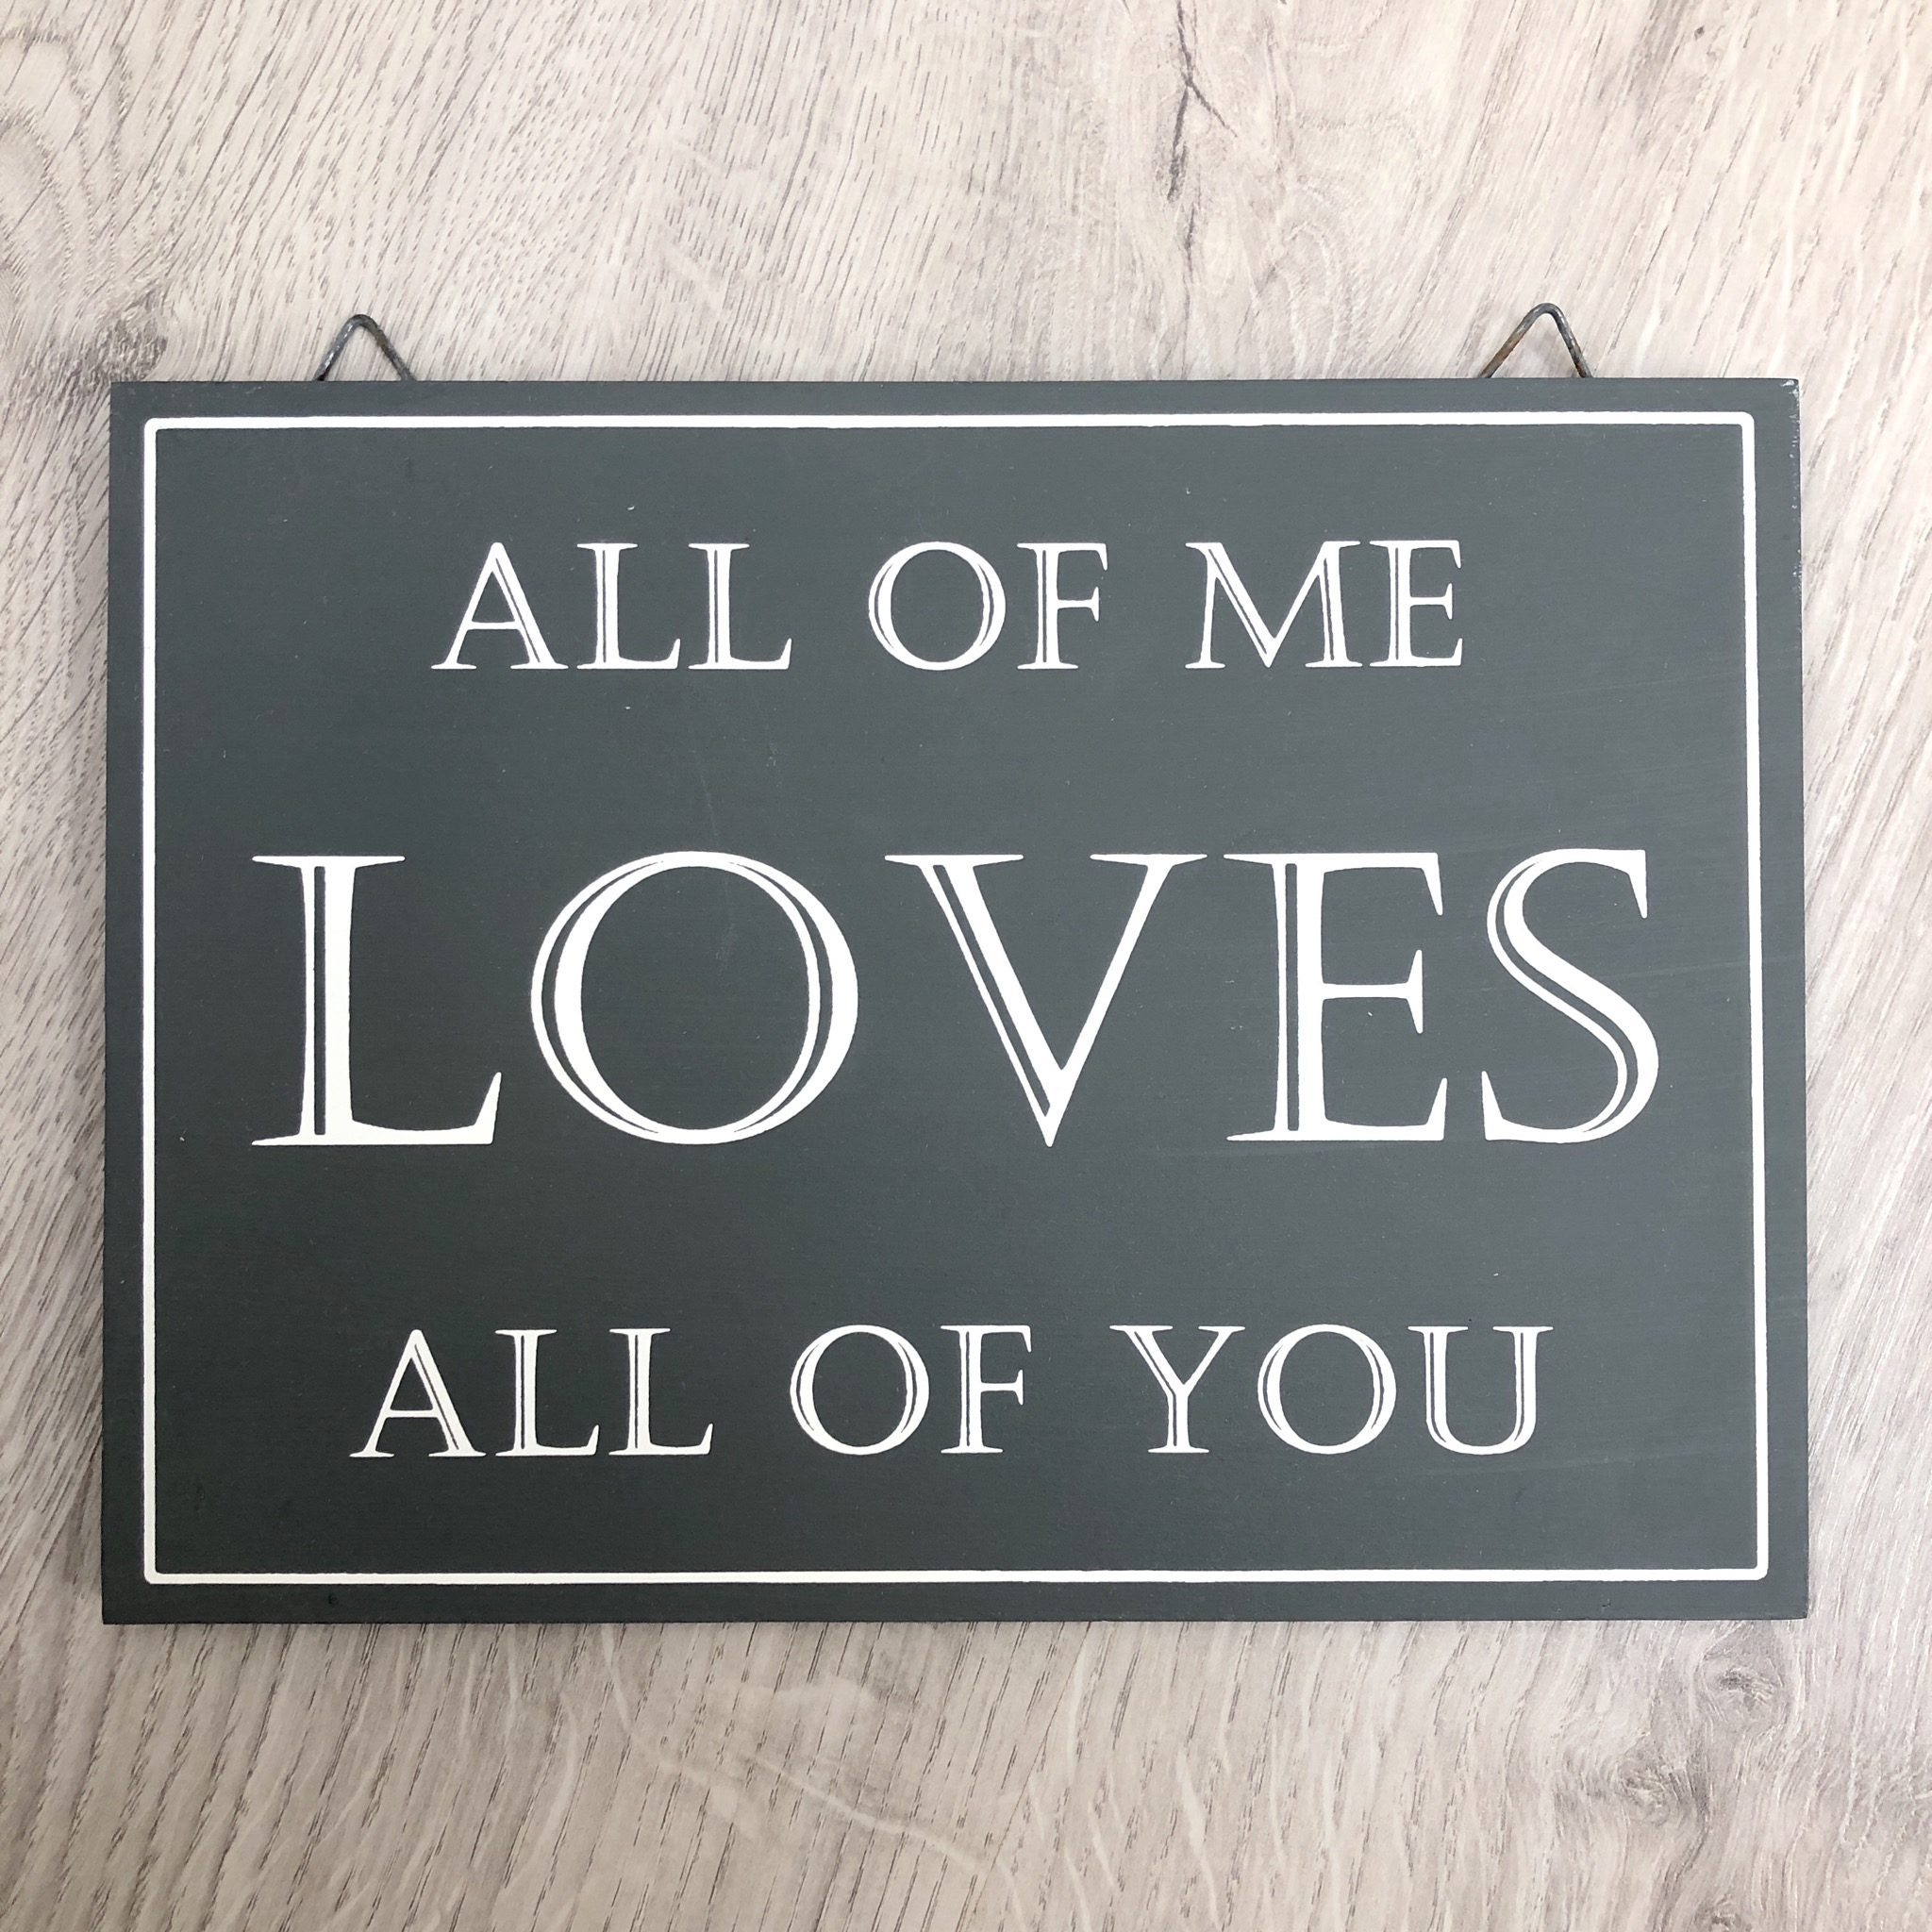 All of me loves all of you hanging sign